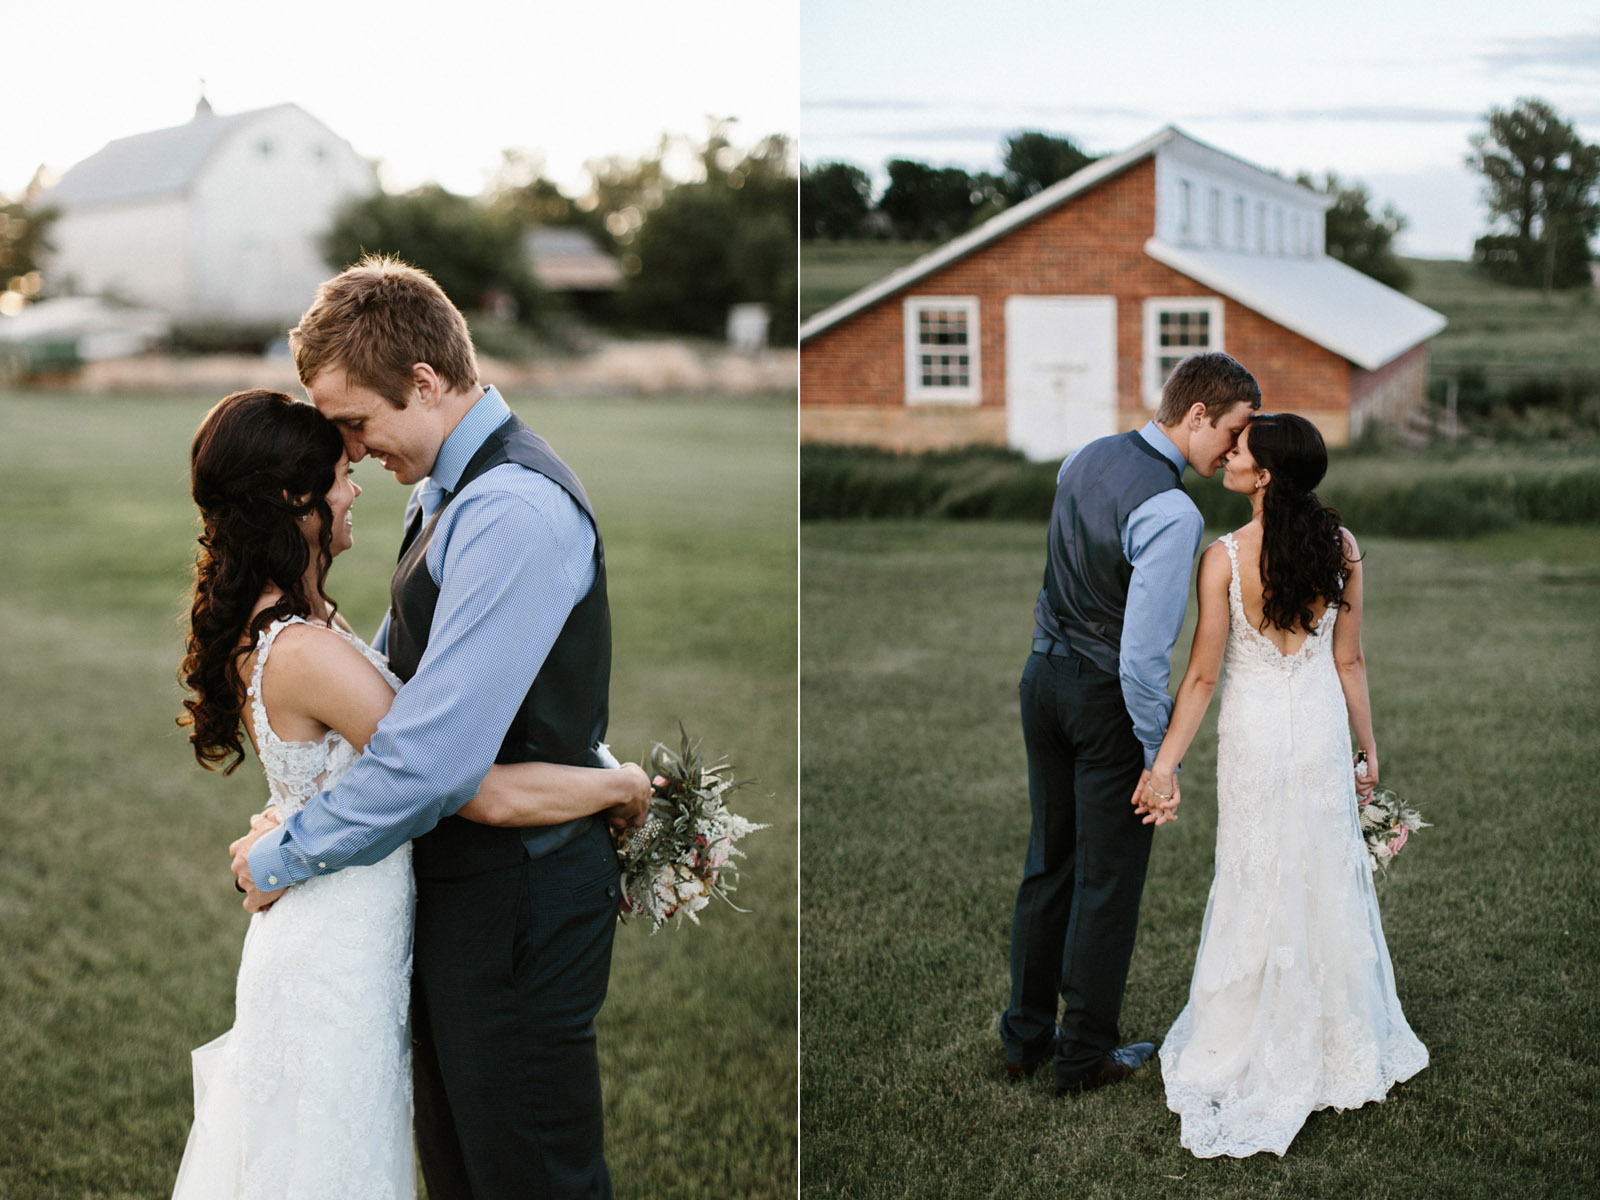 Outdoor_Wedding_SiouxFalls_MaryJoWegnerArboretum_Photographer_Calli&Jon_129.jpg